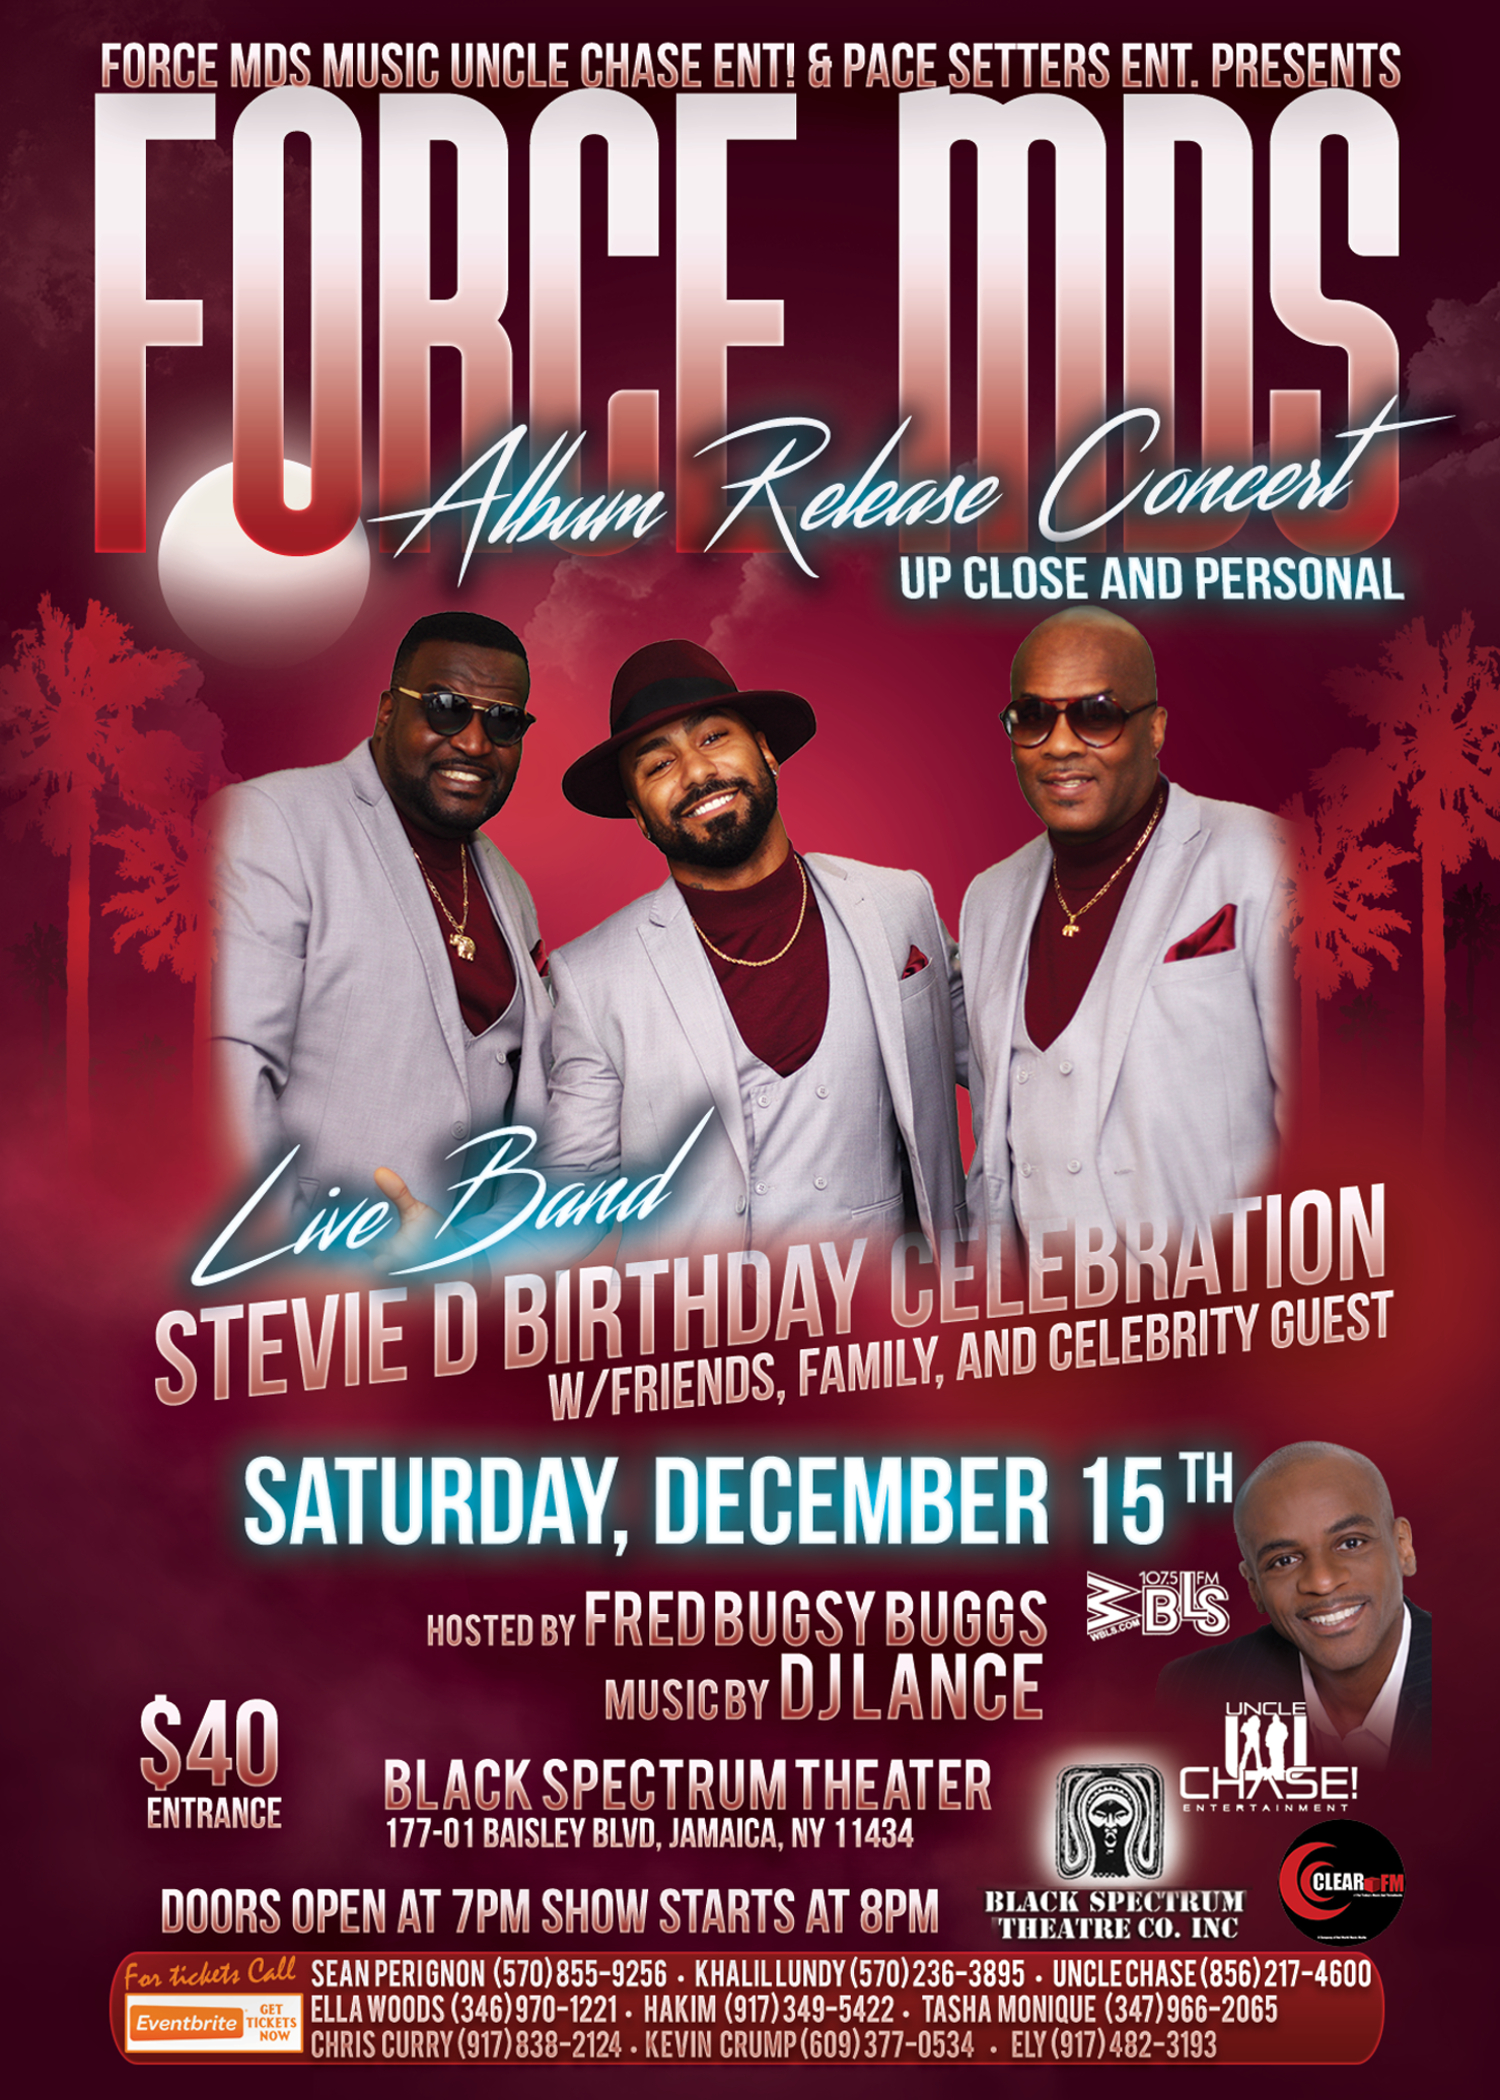 Stevie D Birthday Celebration